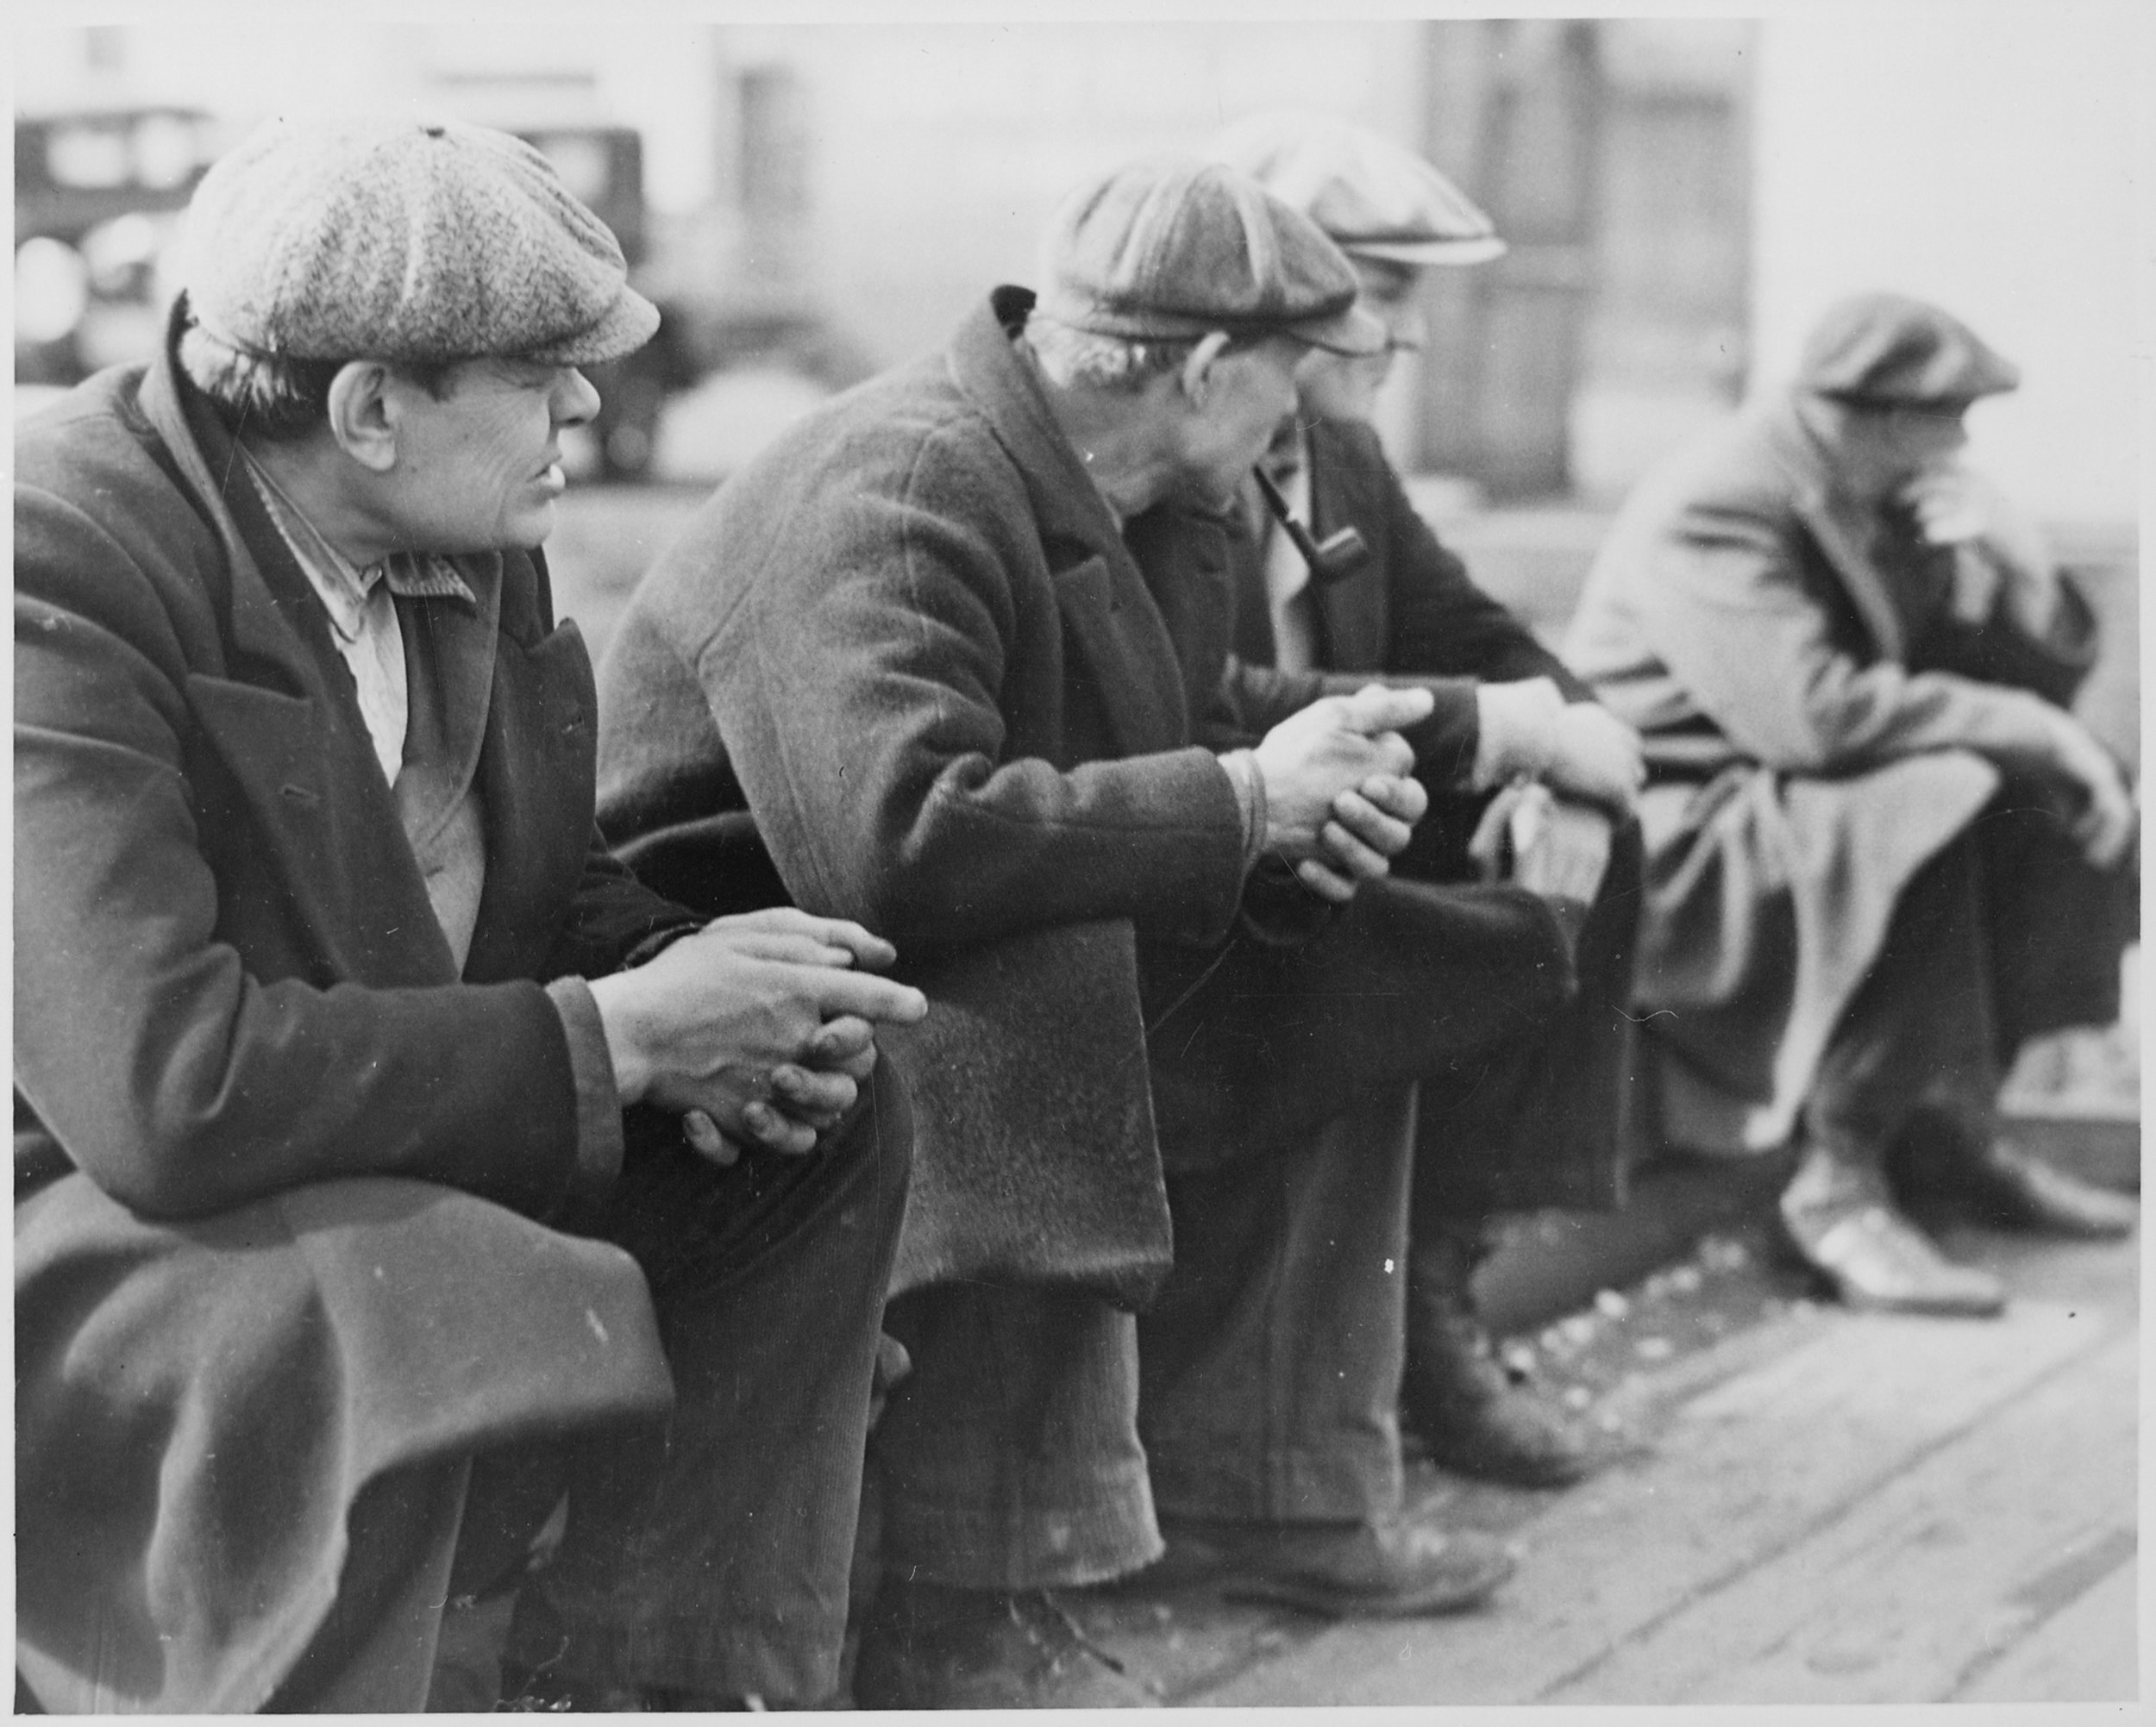 Row_of_men_at_the_New_York_City_docks_out_of_work_during_the_depression,_1934_-_NARA_-_518288.jpg